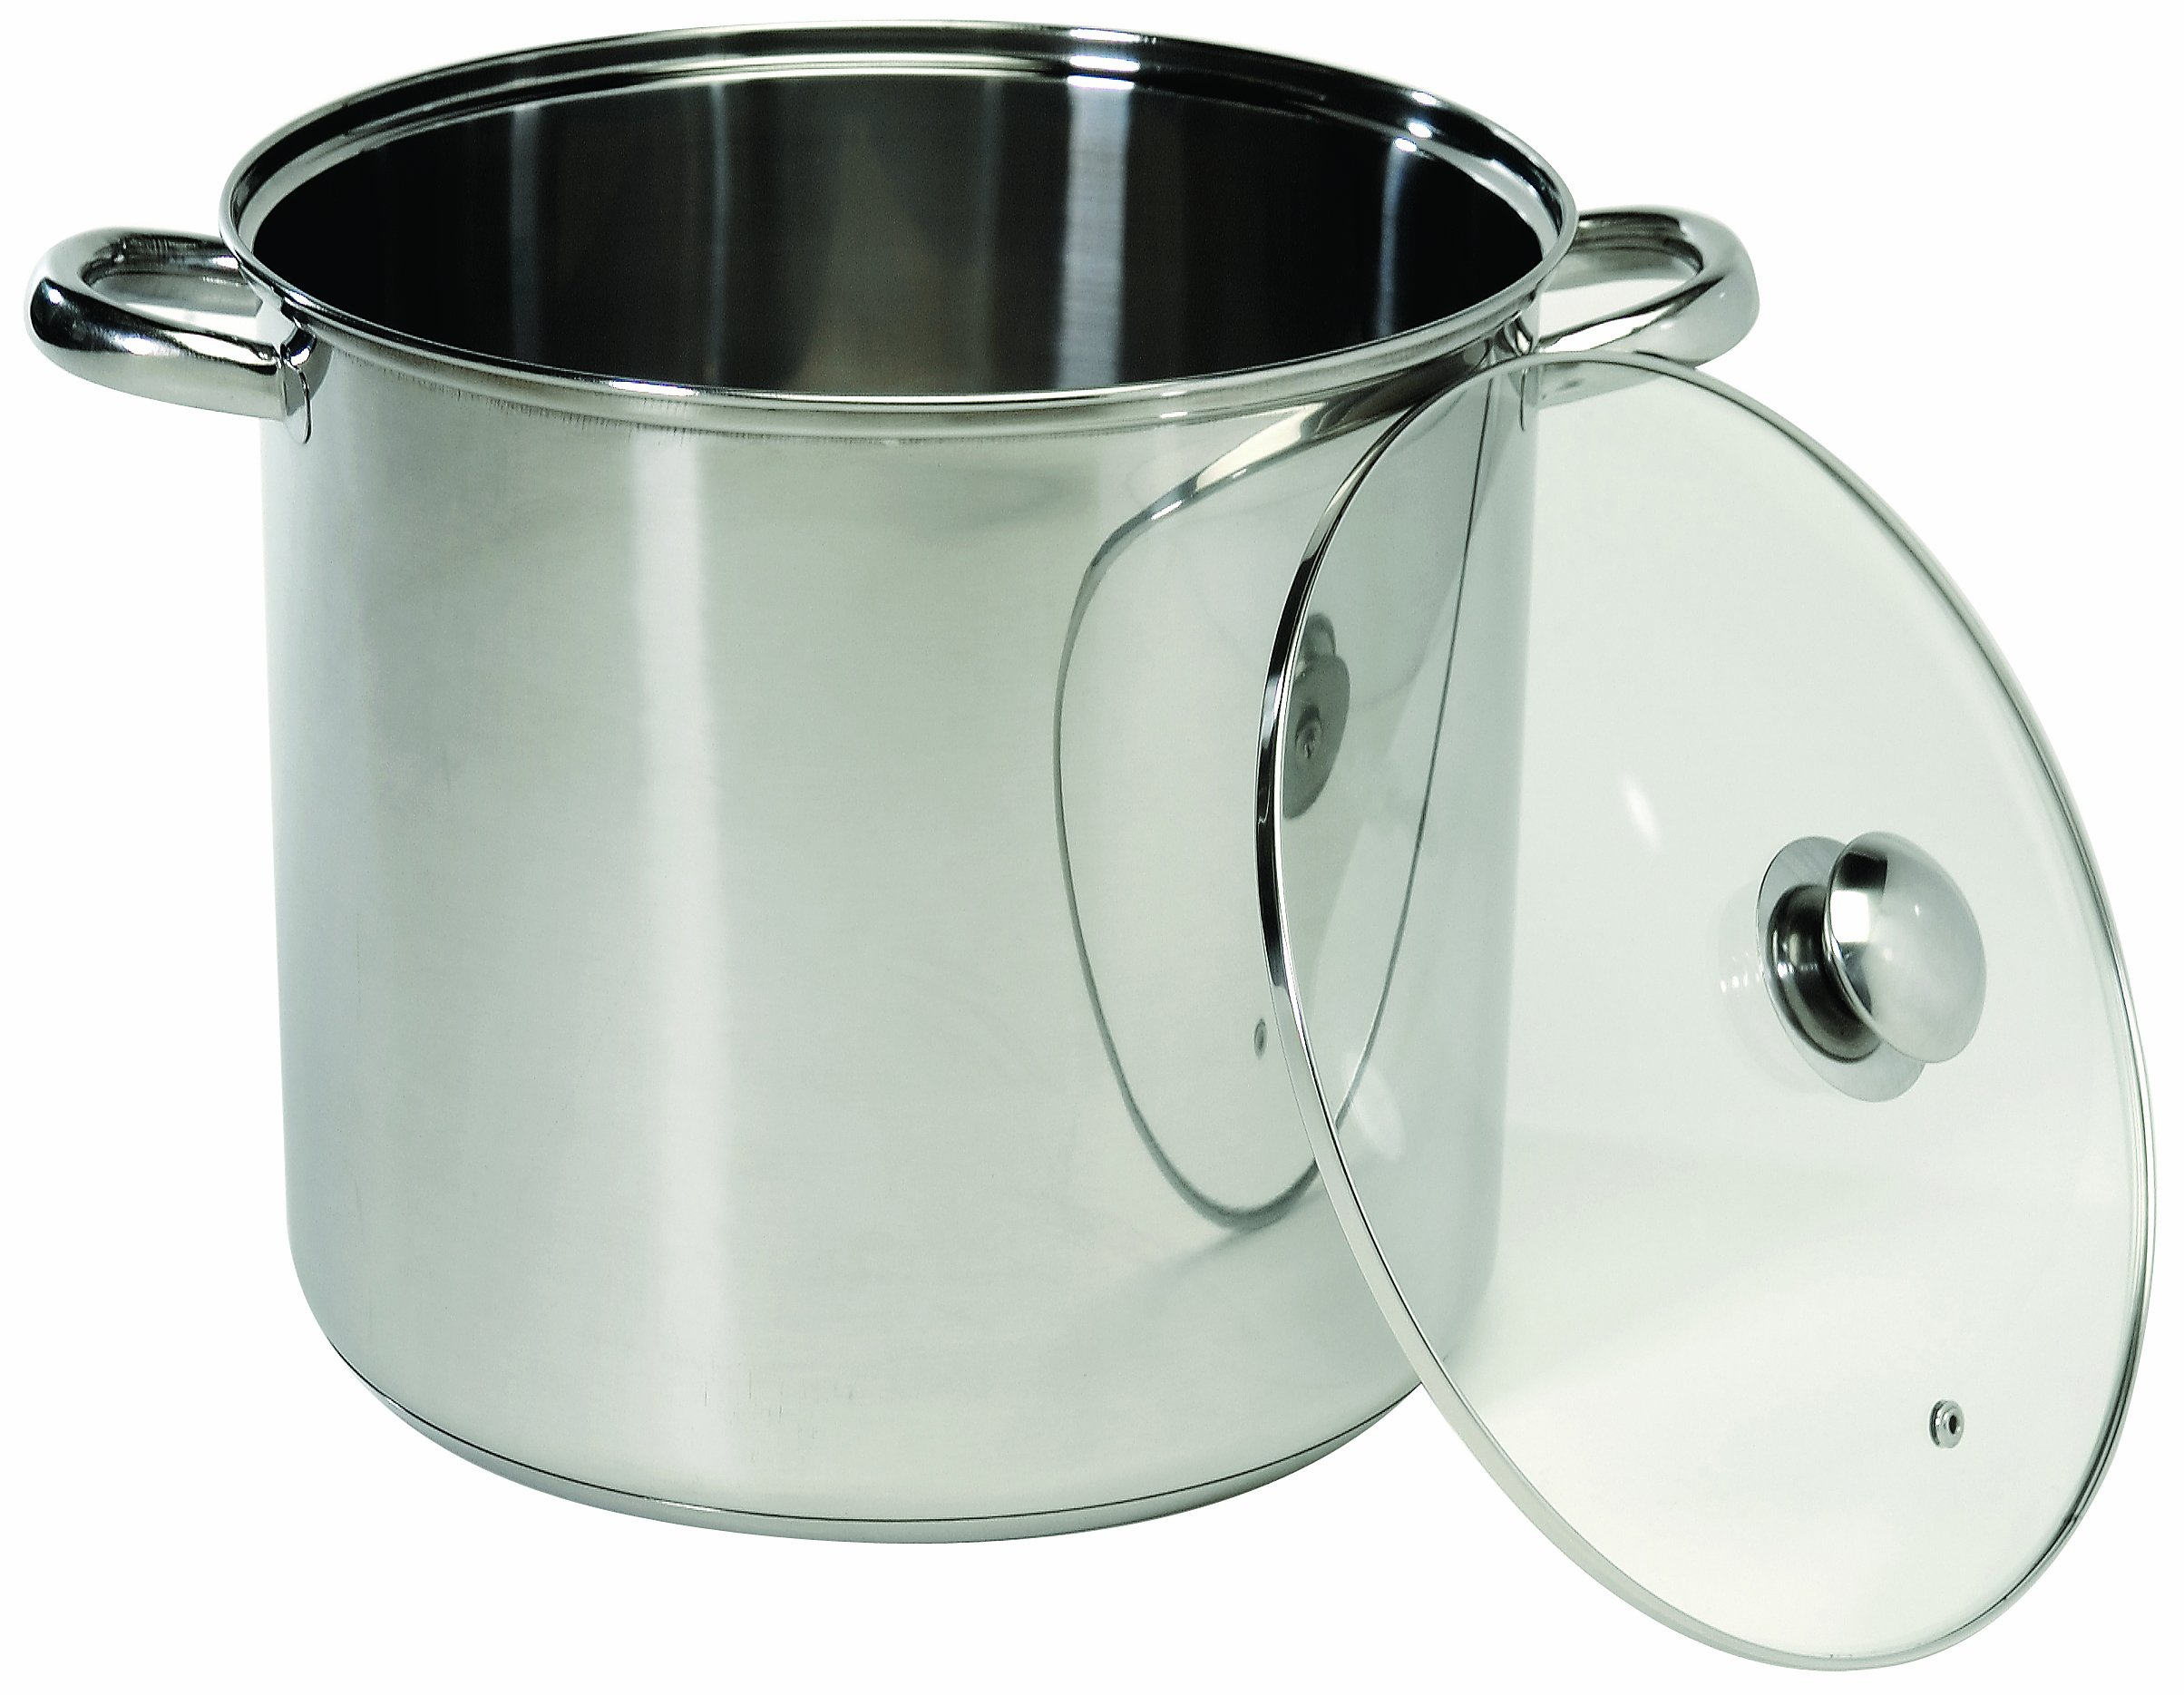 ExcelSteel 551 Stockpot with with Encapsulated Base, 20 quarts, Silver by ExcelSteel